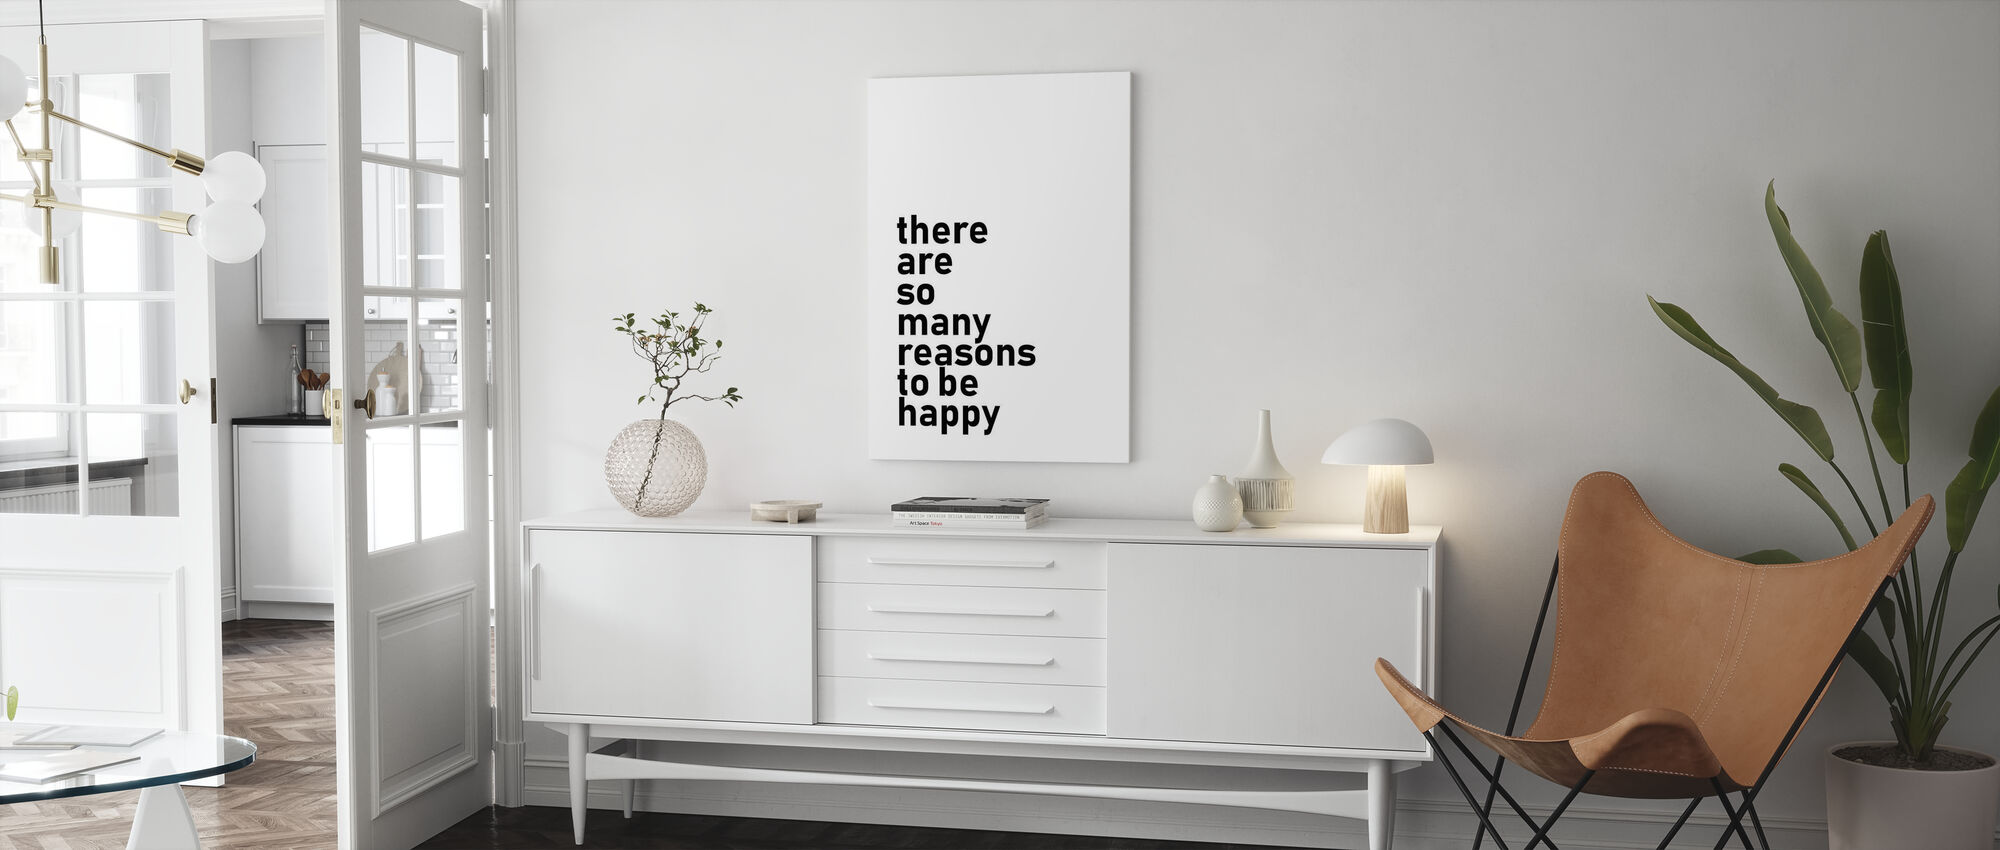 Reasons to be Happy - Canvas print - Living Room